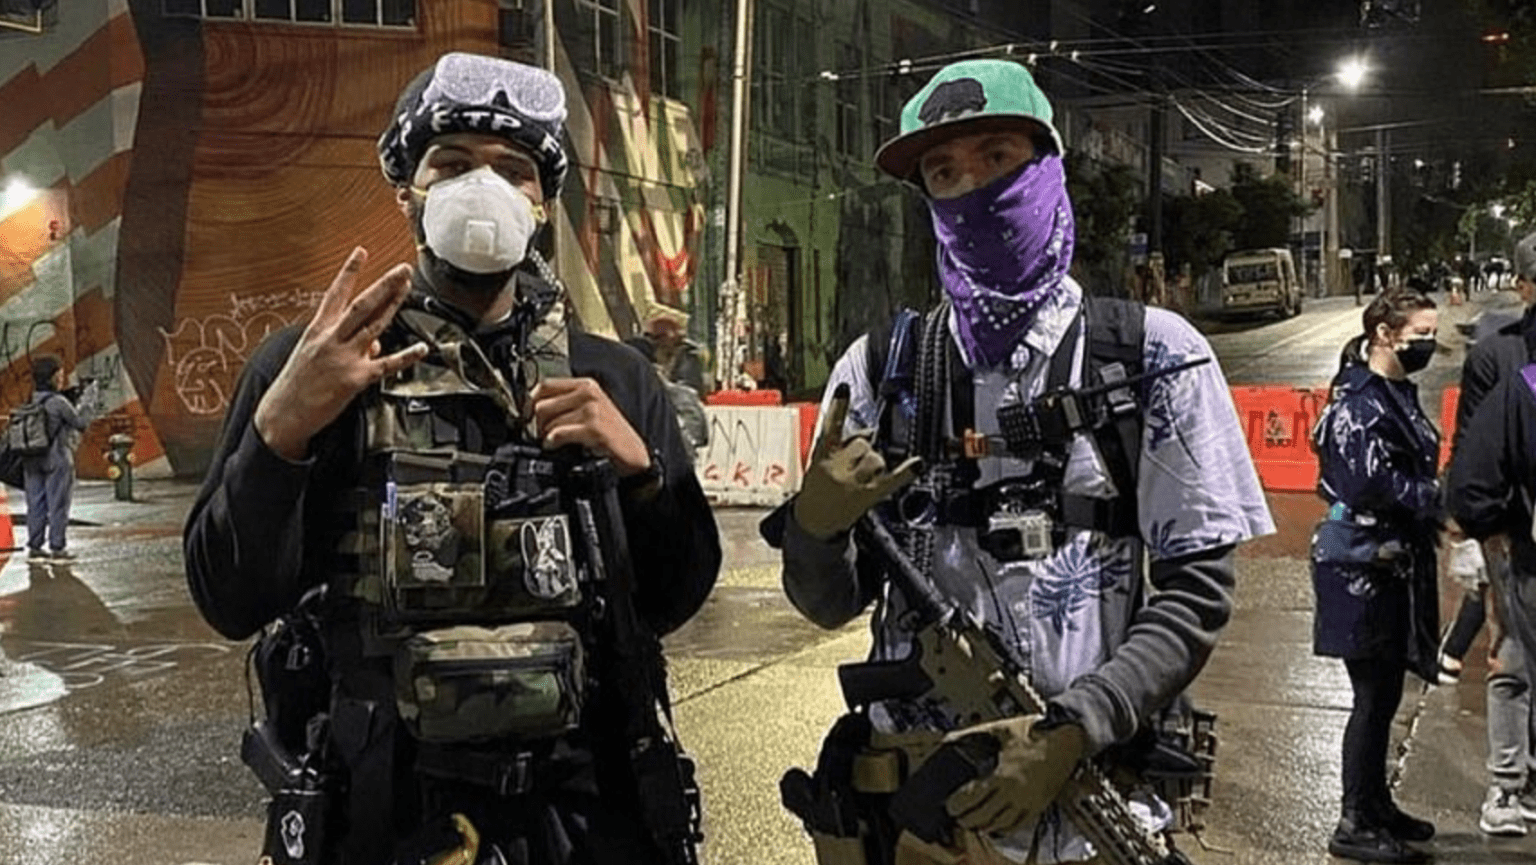 16 year old boy dead, 14 year old in critical condition after two shootings by protestors inside Seattle's 'autonomous zone'